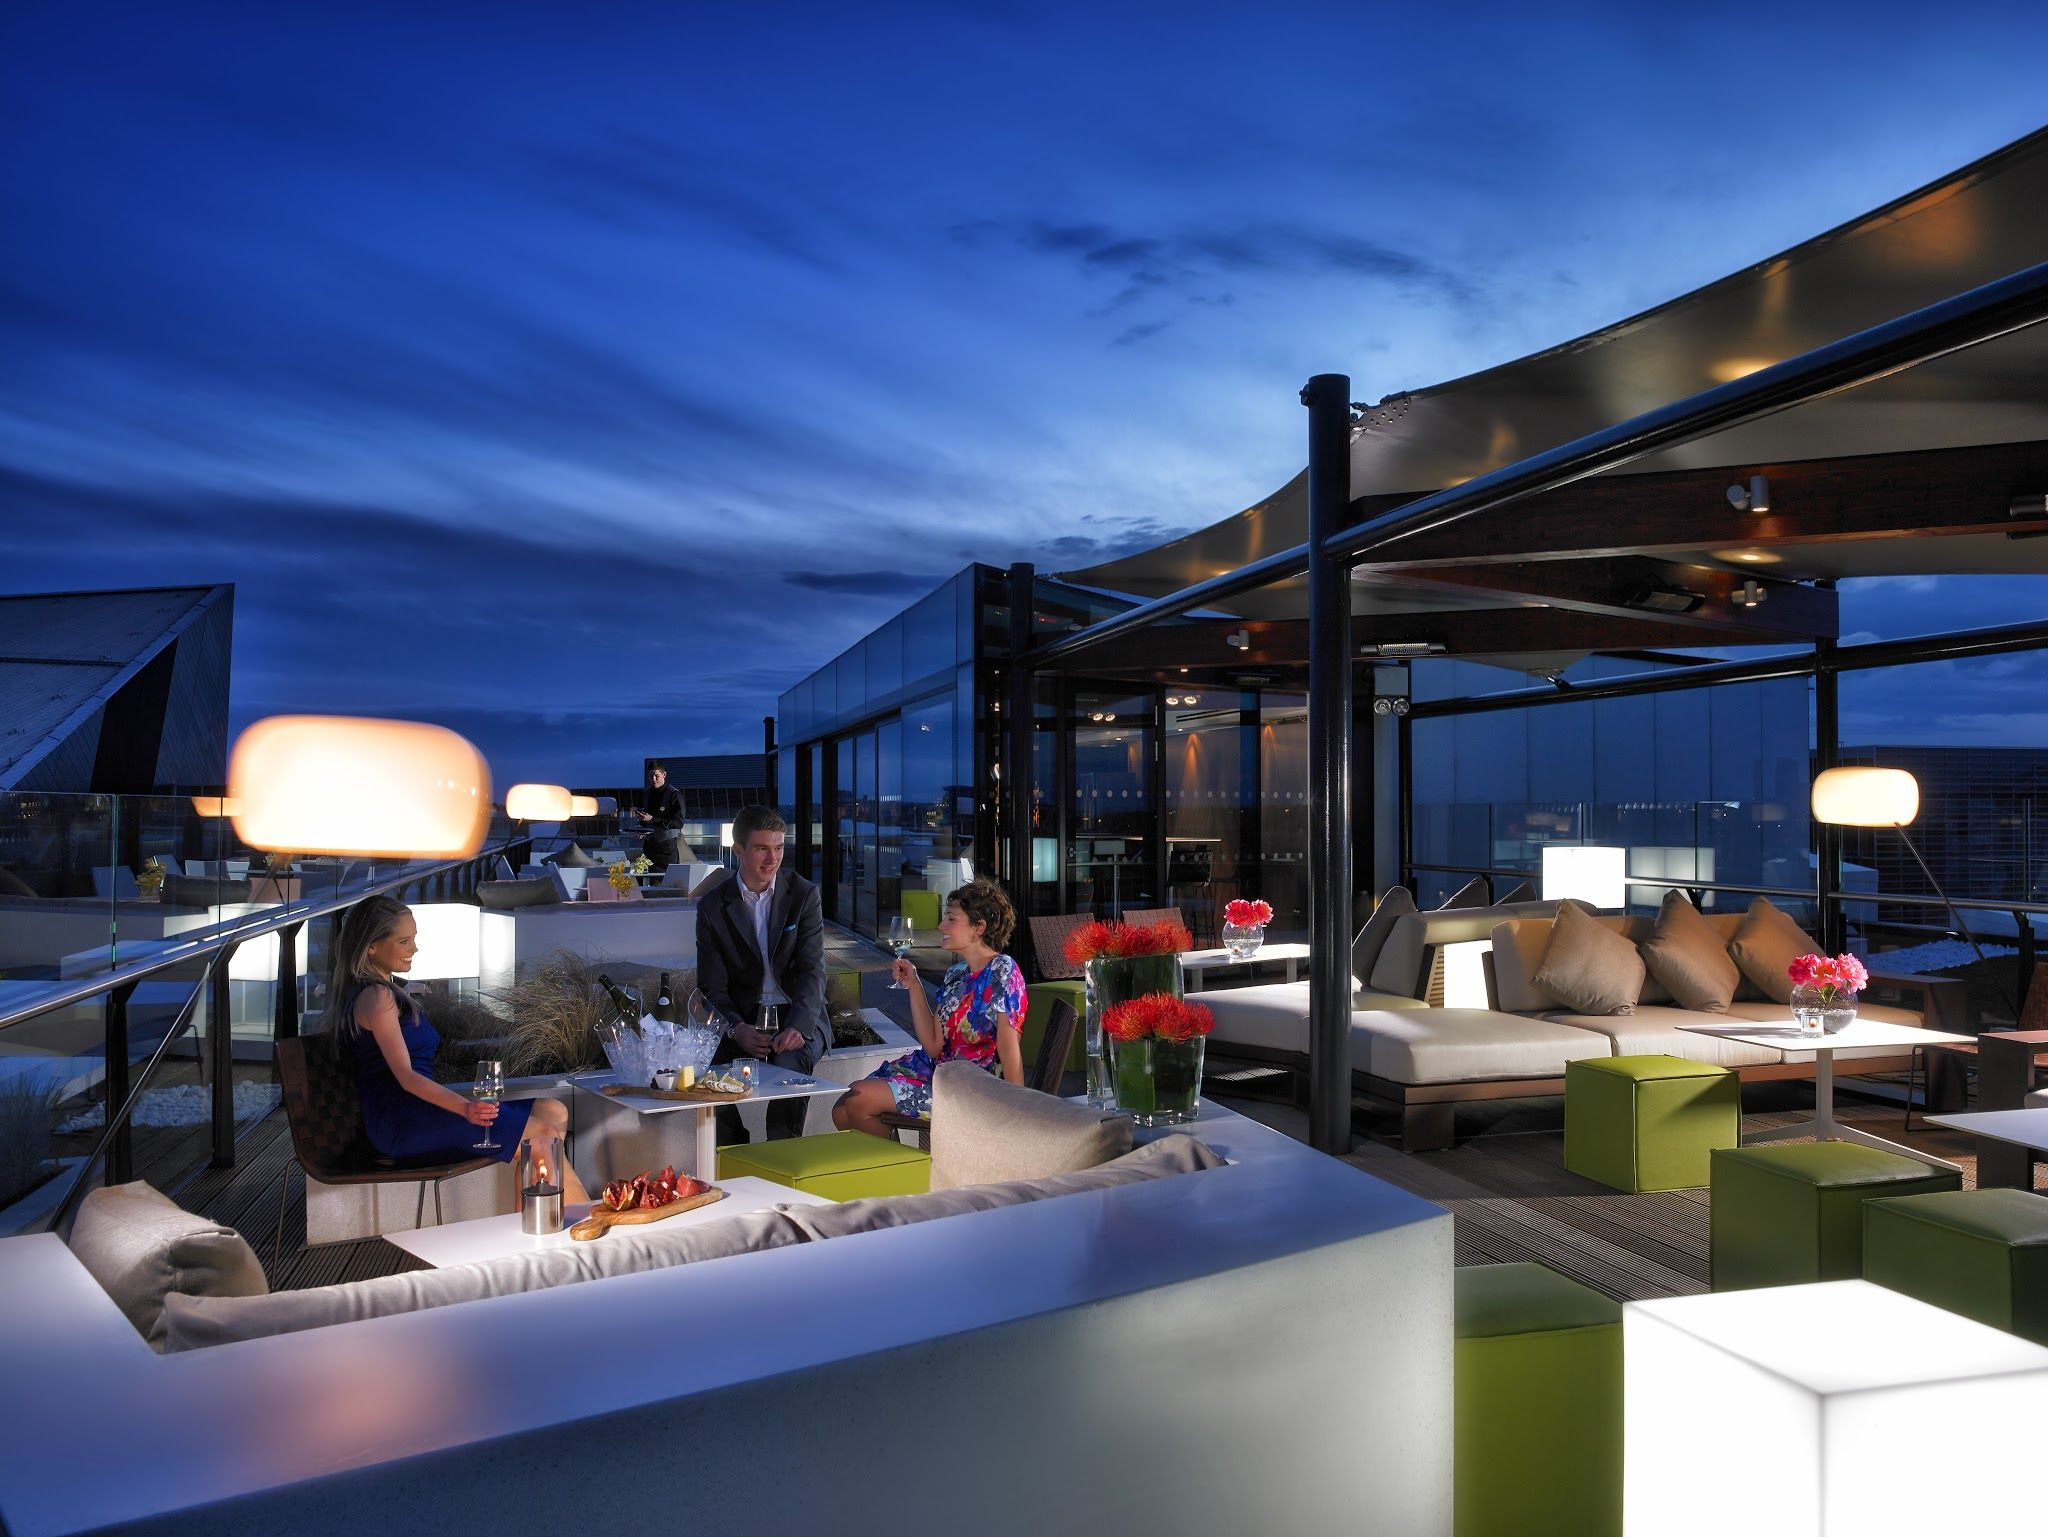 rooftop bar at marker in dublin ireland dublin pinterest rh pinterest com places to stay in dublin ireland near temple bar places to stay in dublin ireland near airport